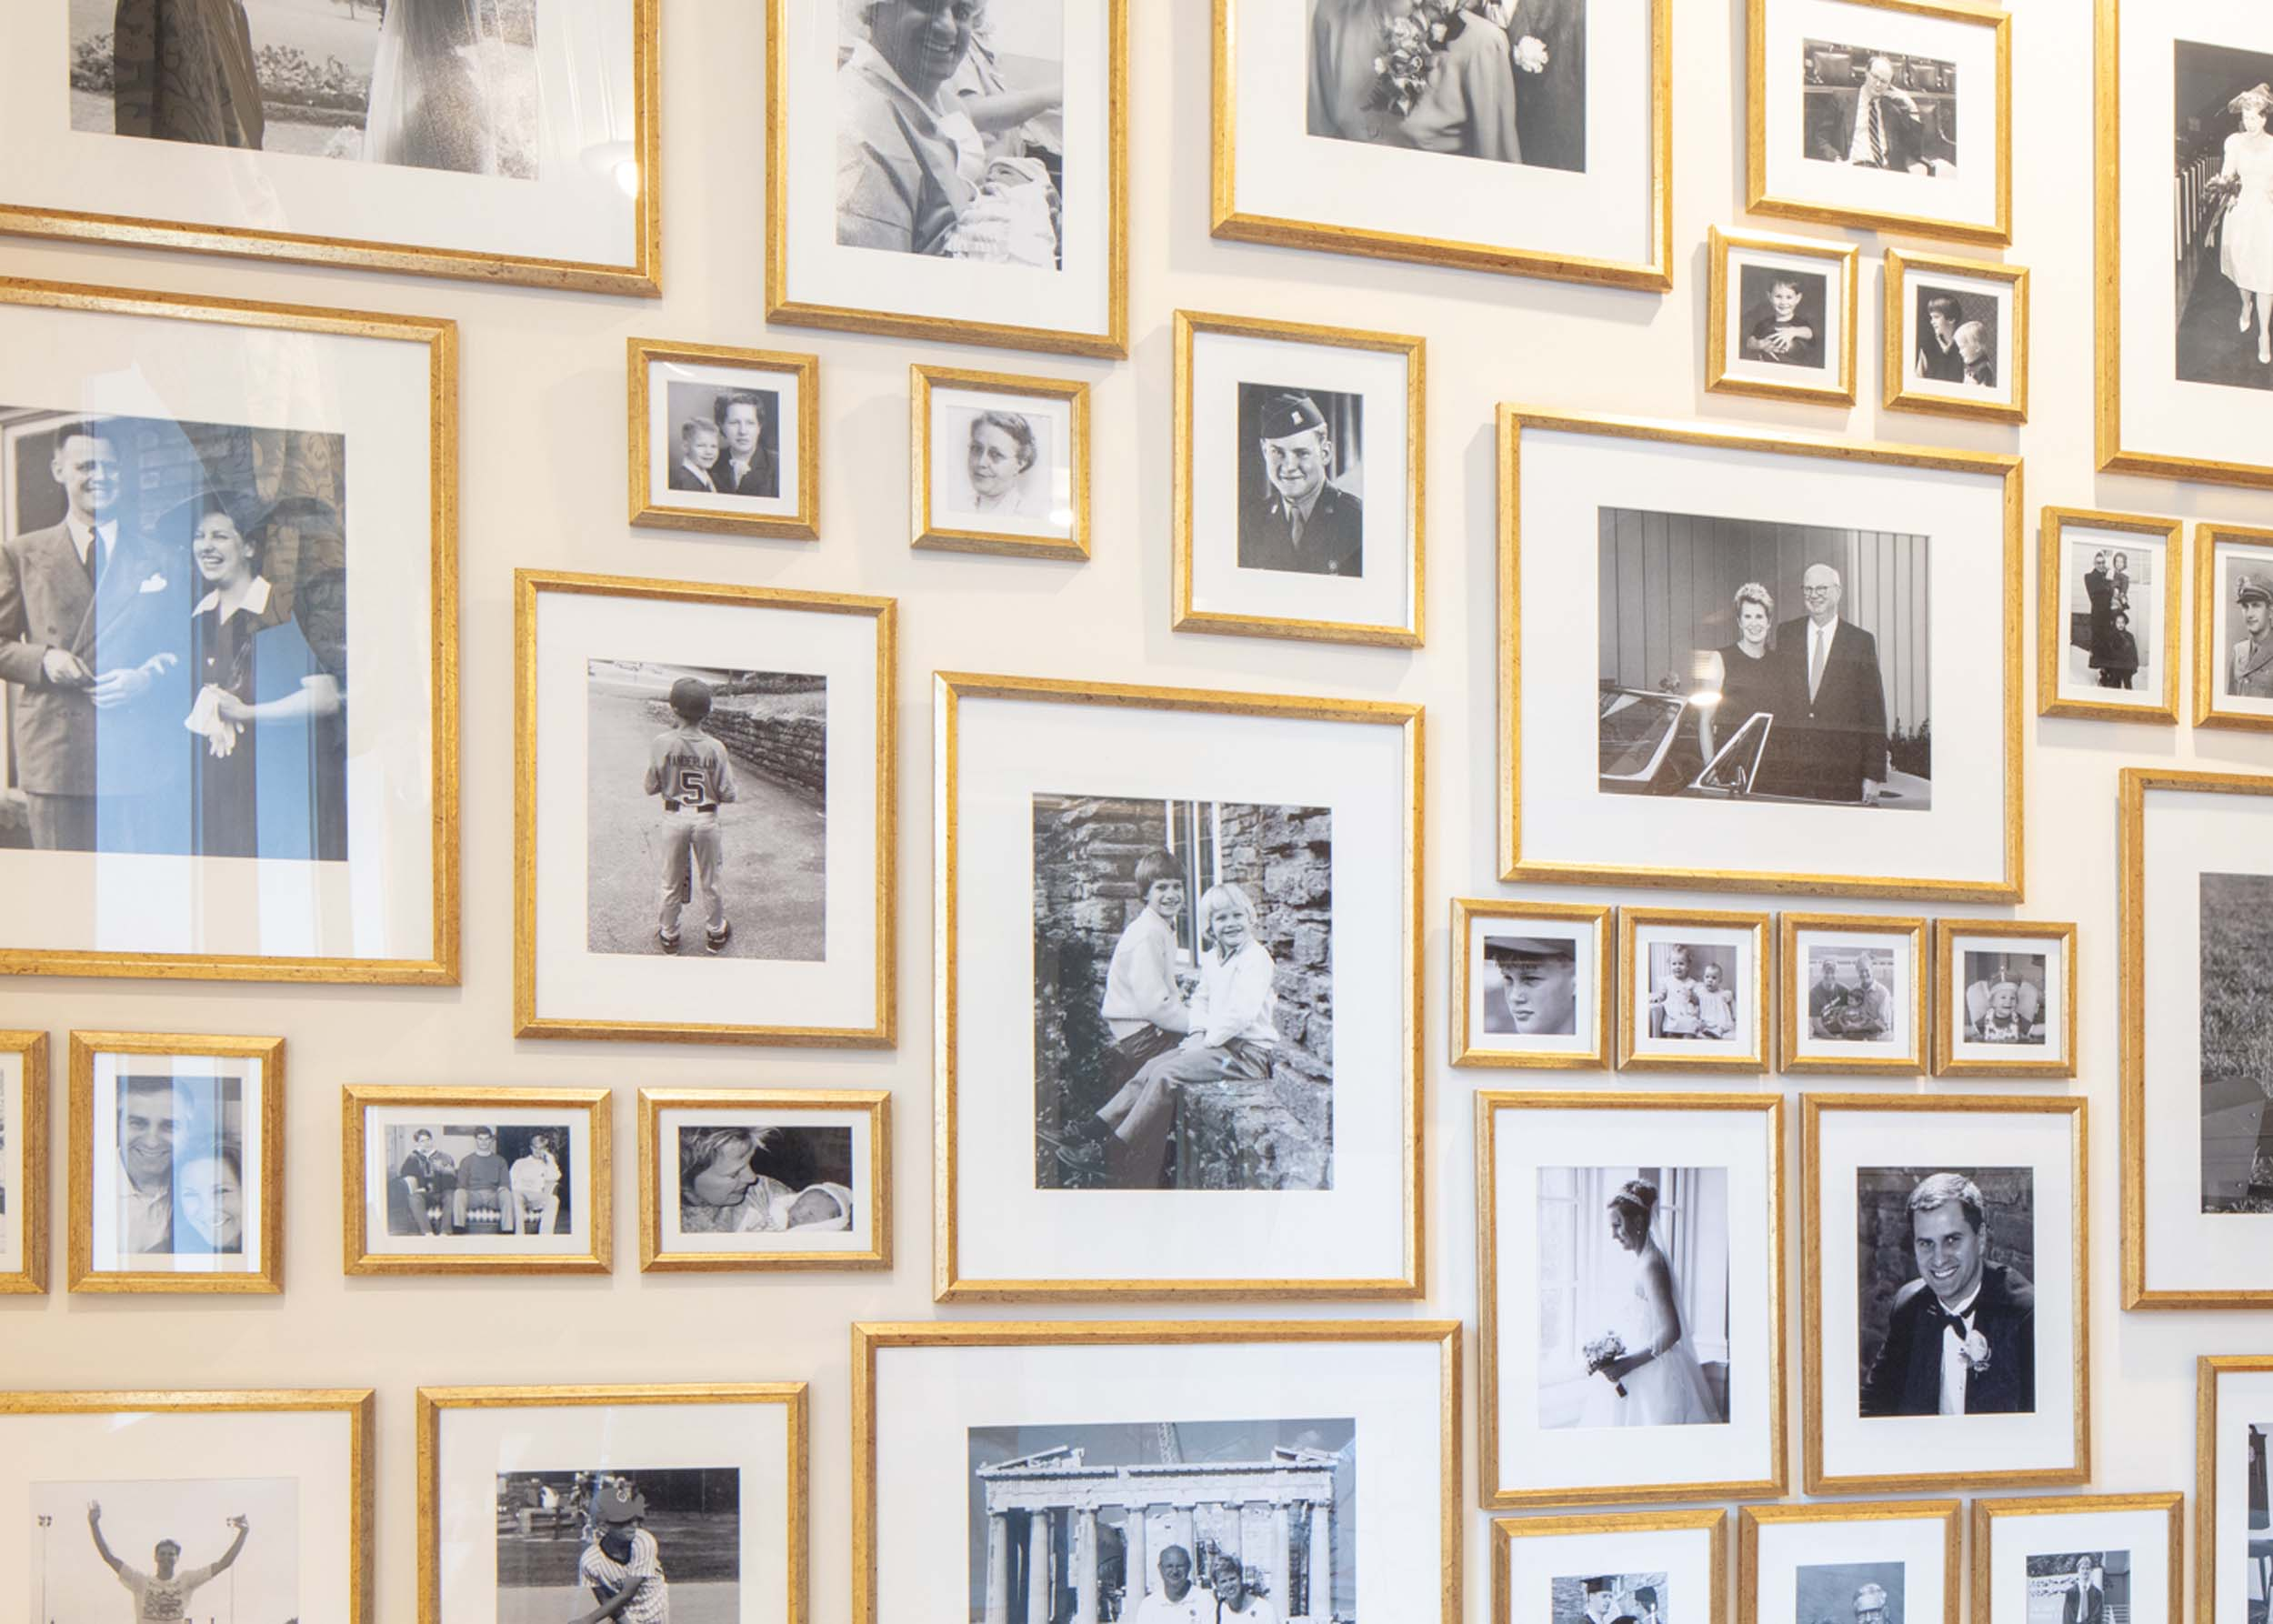 A wall with photos of the family in various photo frames